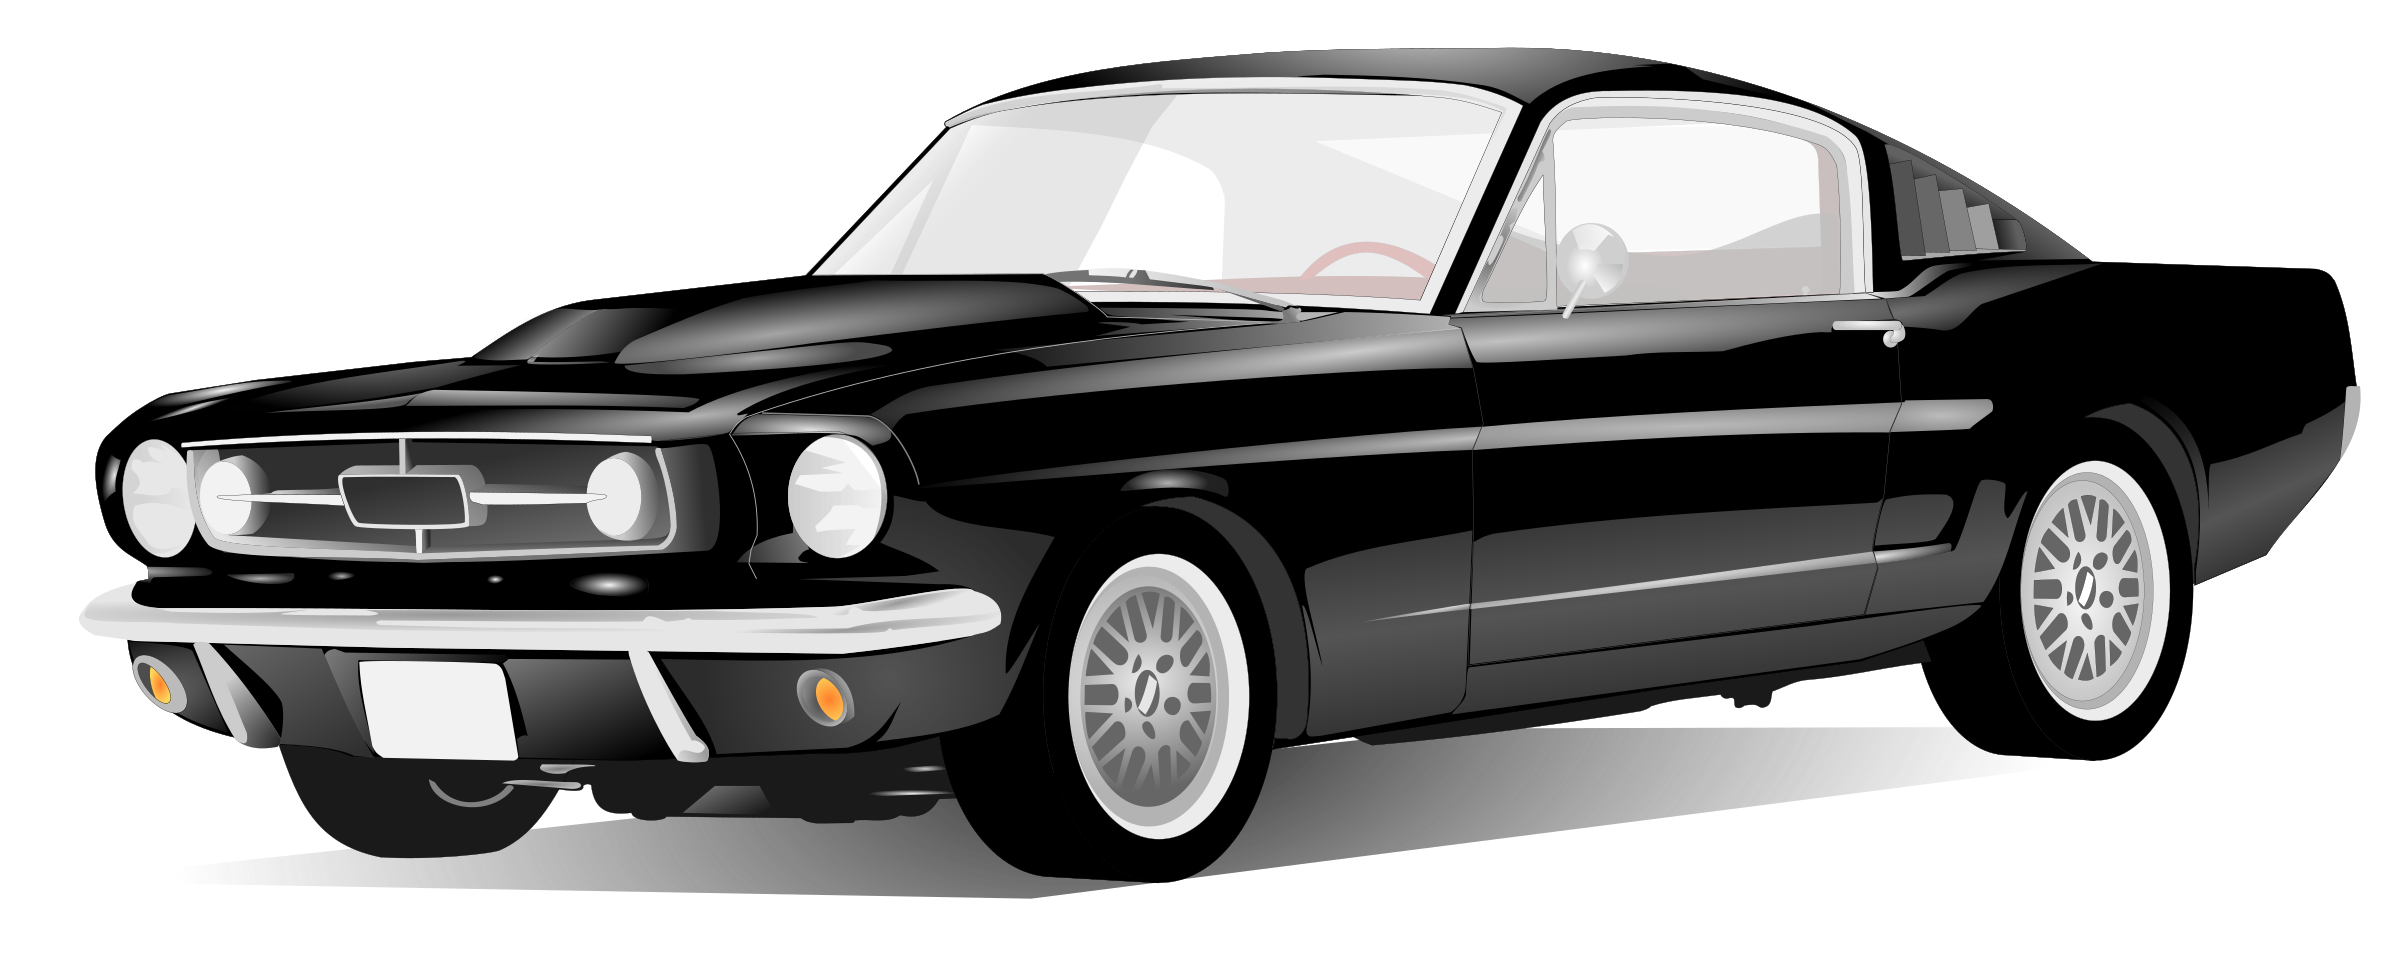 Car with hood open clipart image black and white Clipart - American Sport Car image black and white